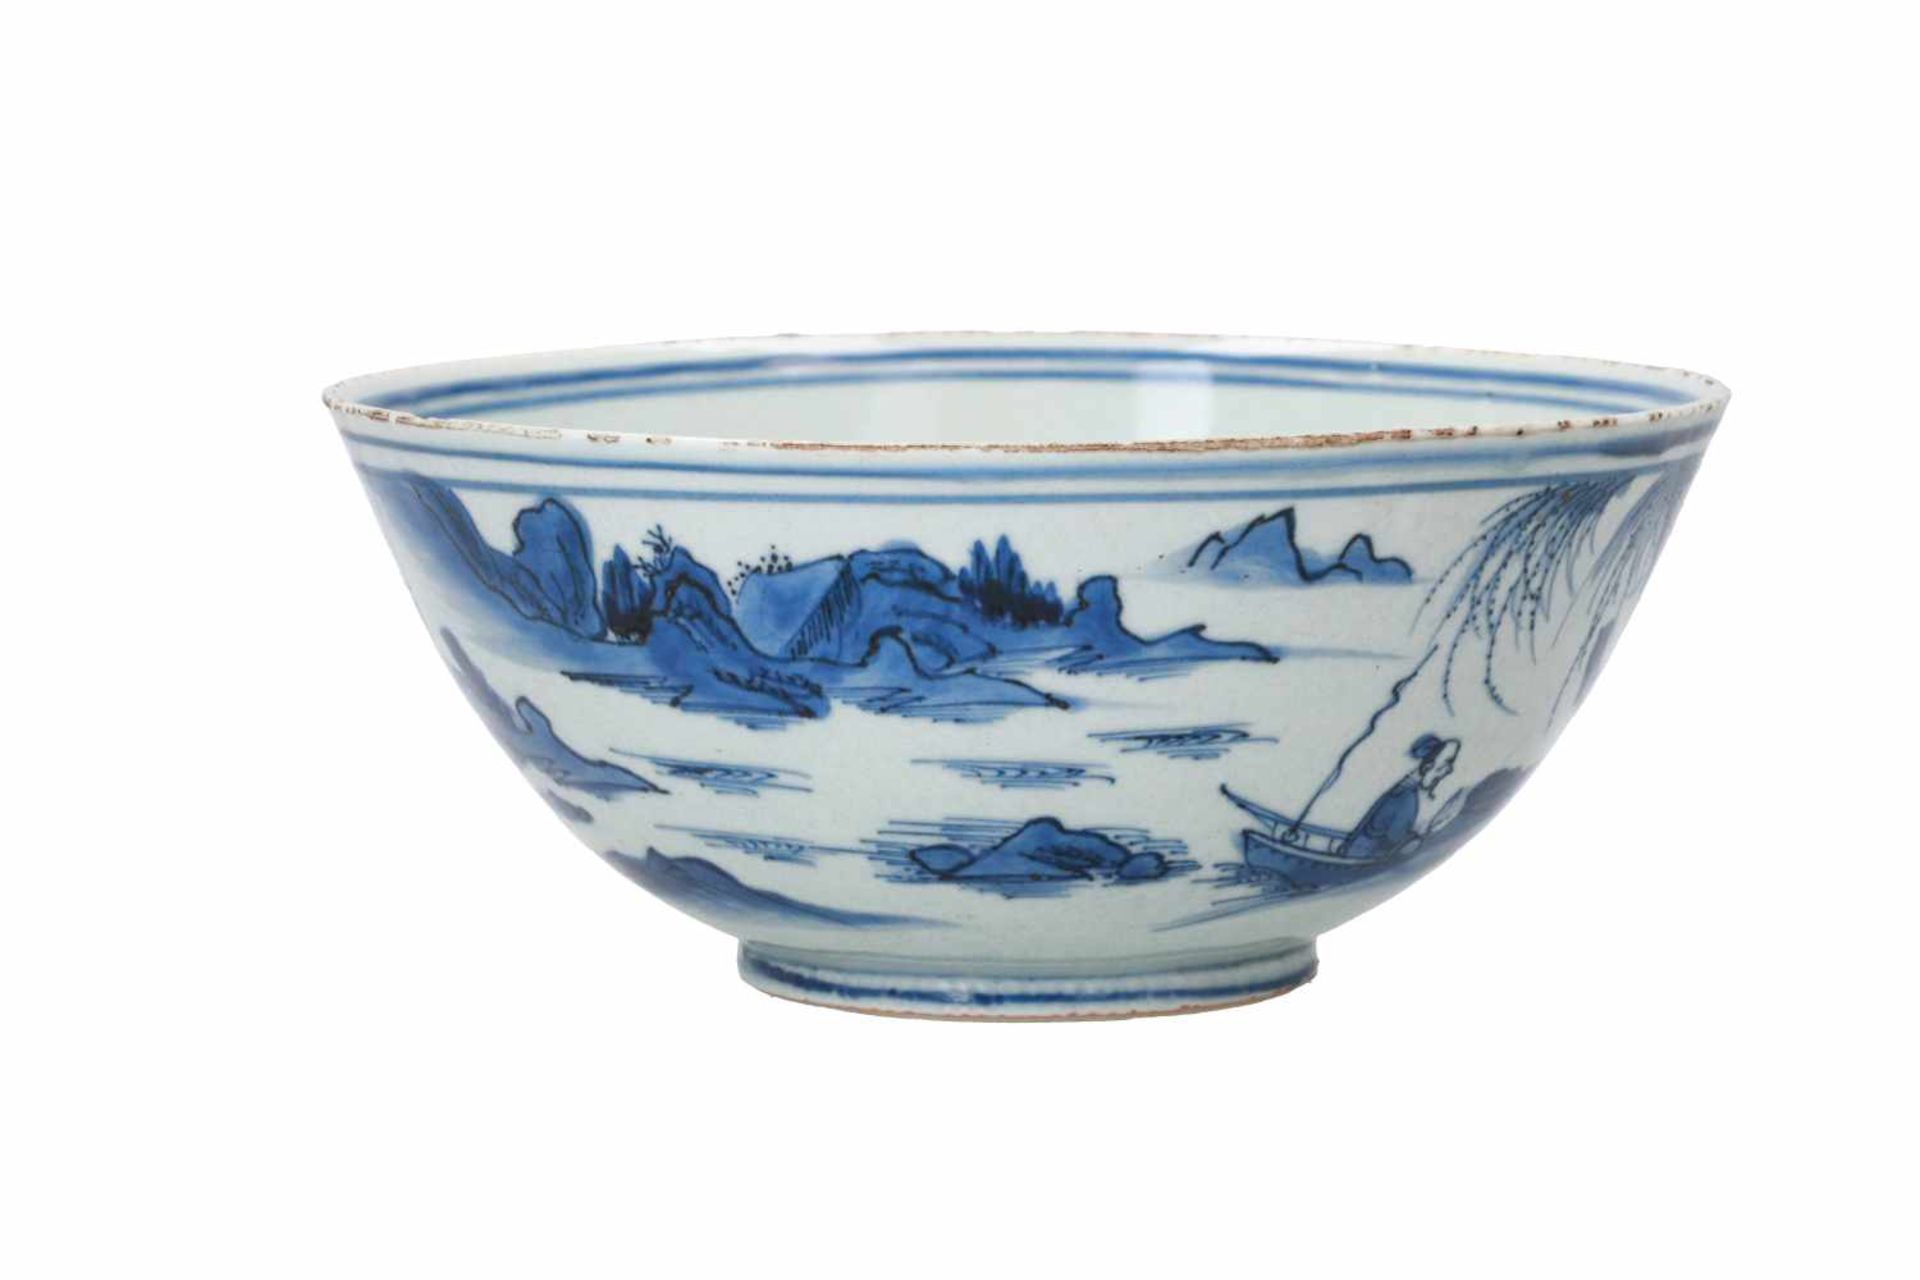 A blue and white porcelain bowl, decorated with a past-master in a mountainous river landscape. - Bild 4 aus 6